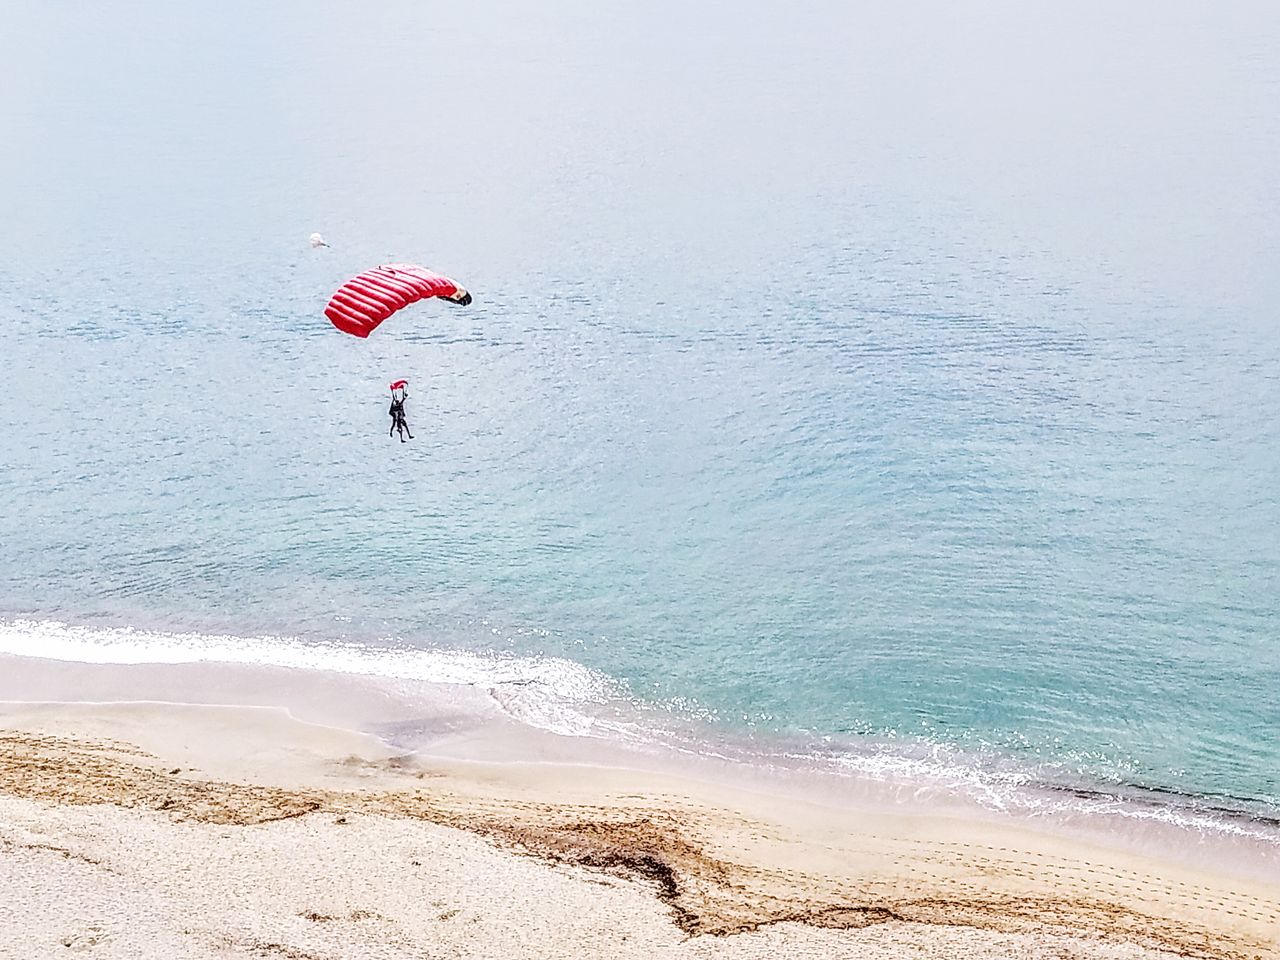 People paragliding over beach